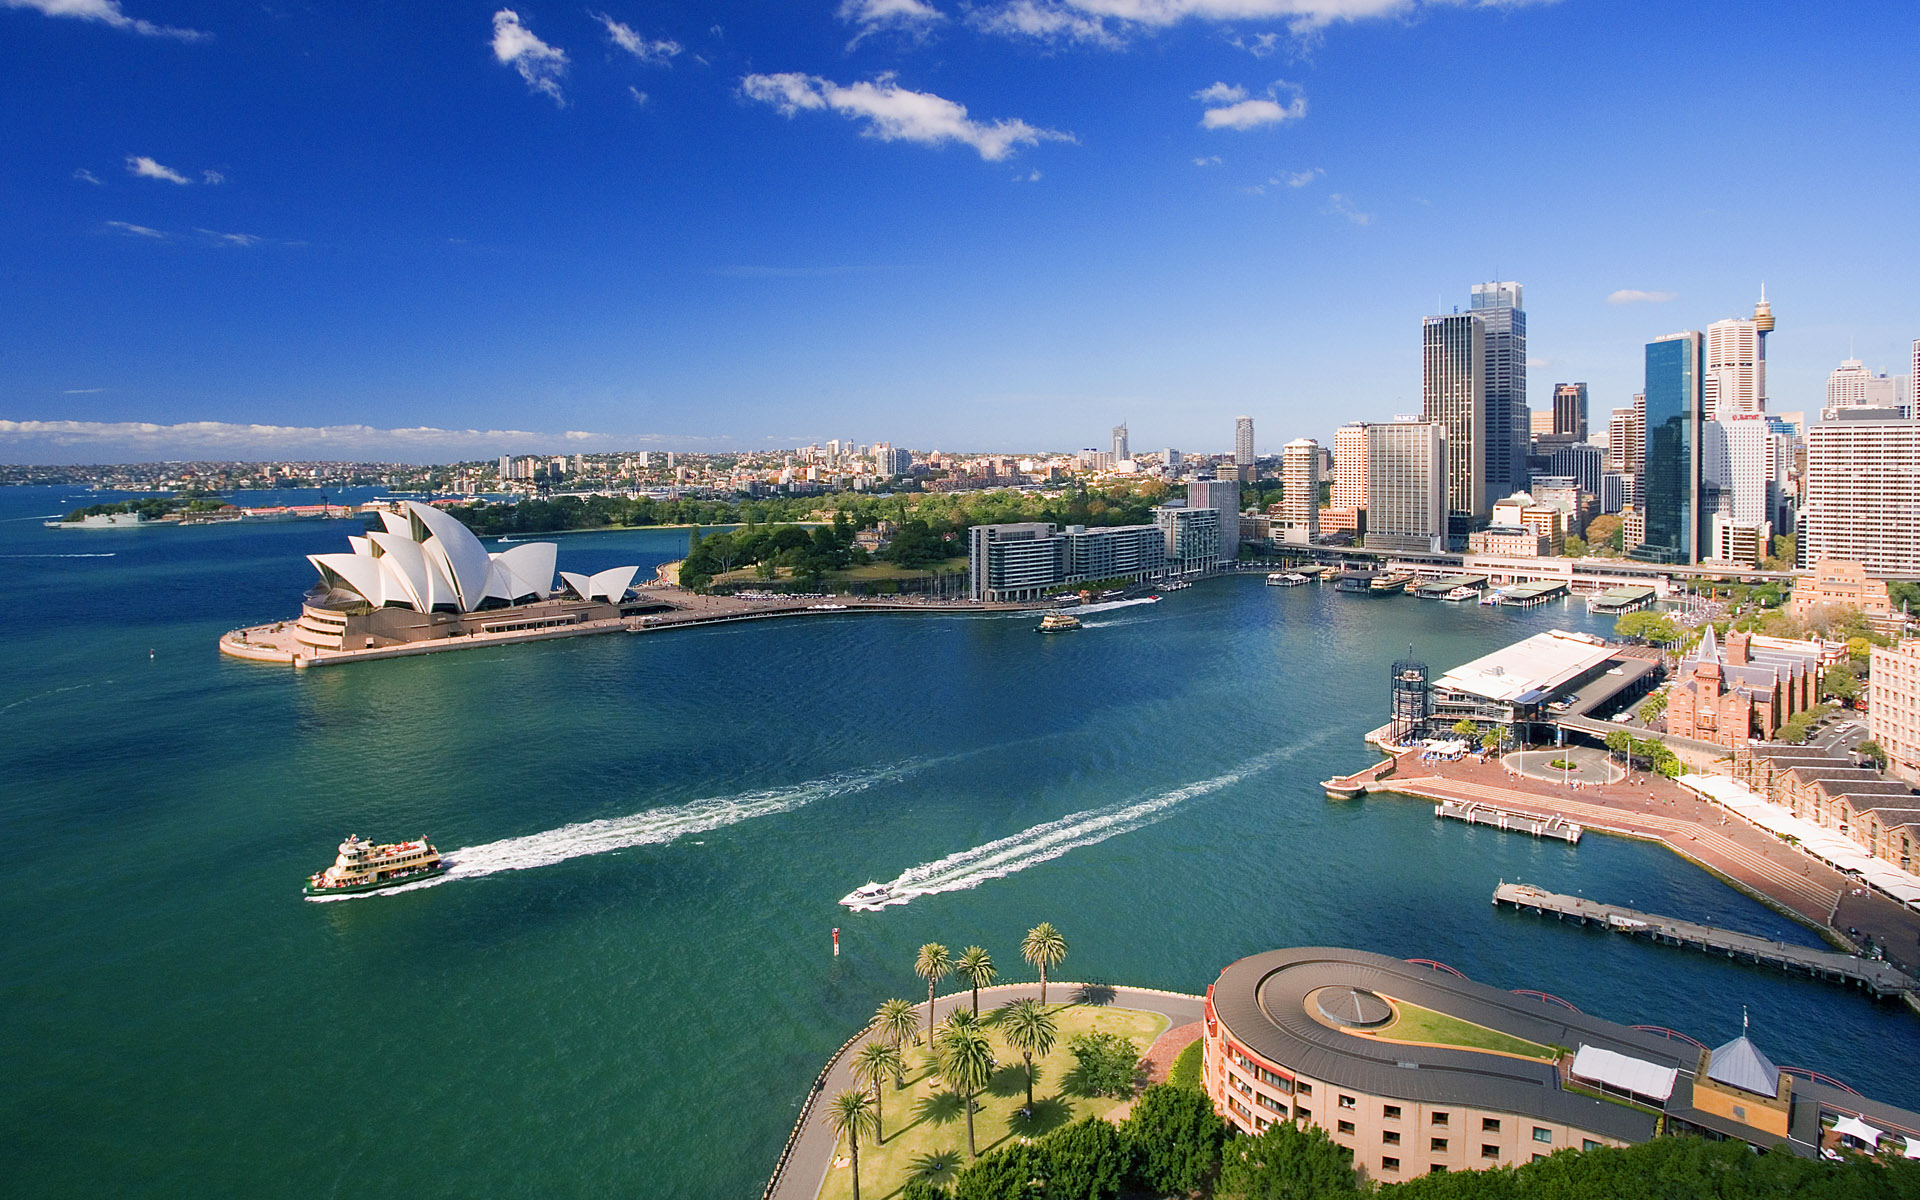 Australian Daytime View Backgrounds